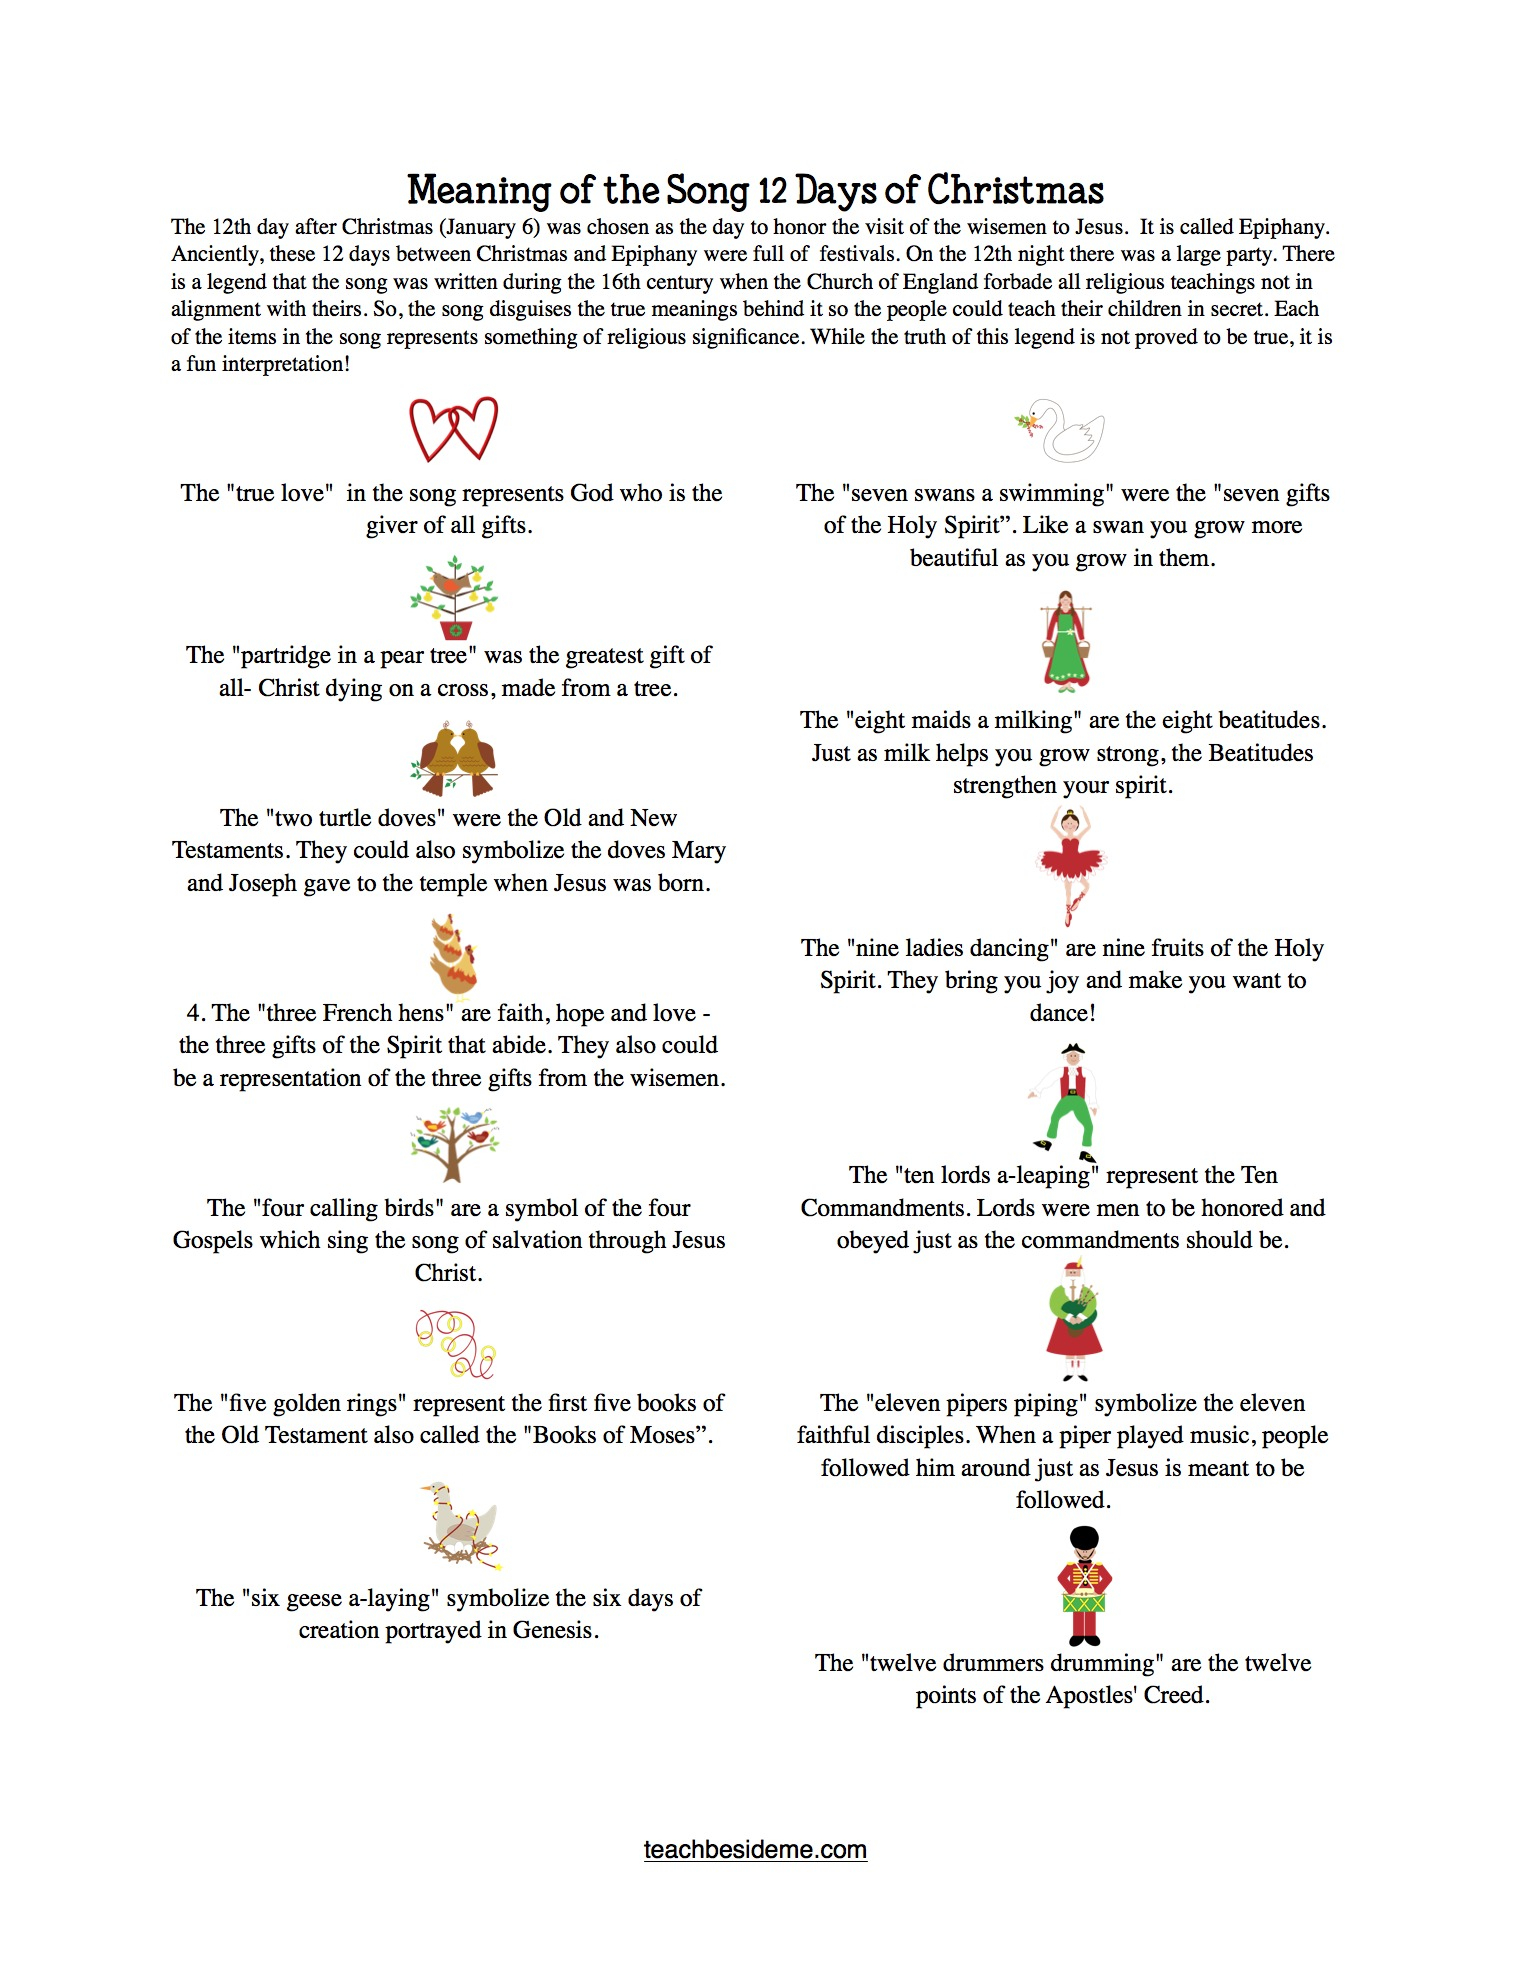 12 Days Of Christmas For Kids With Meaning Worksheet